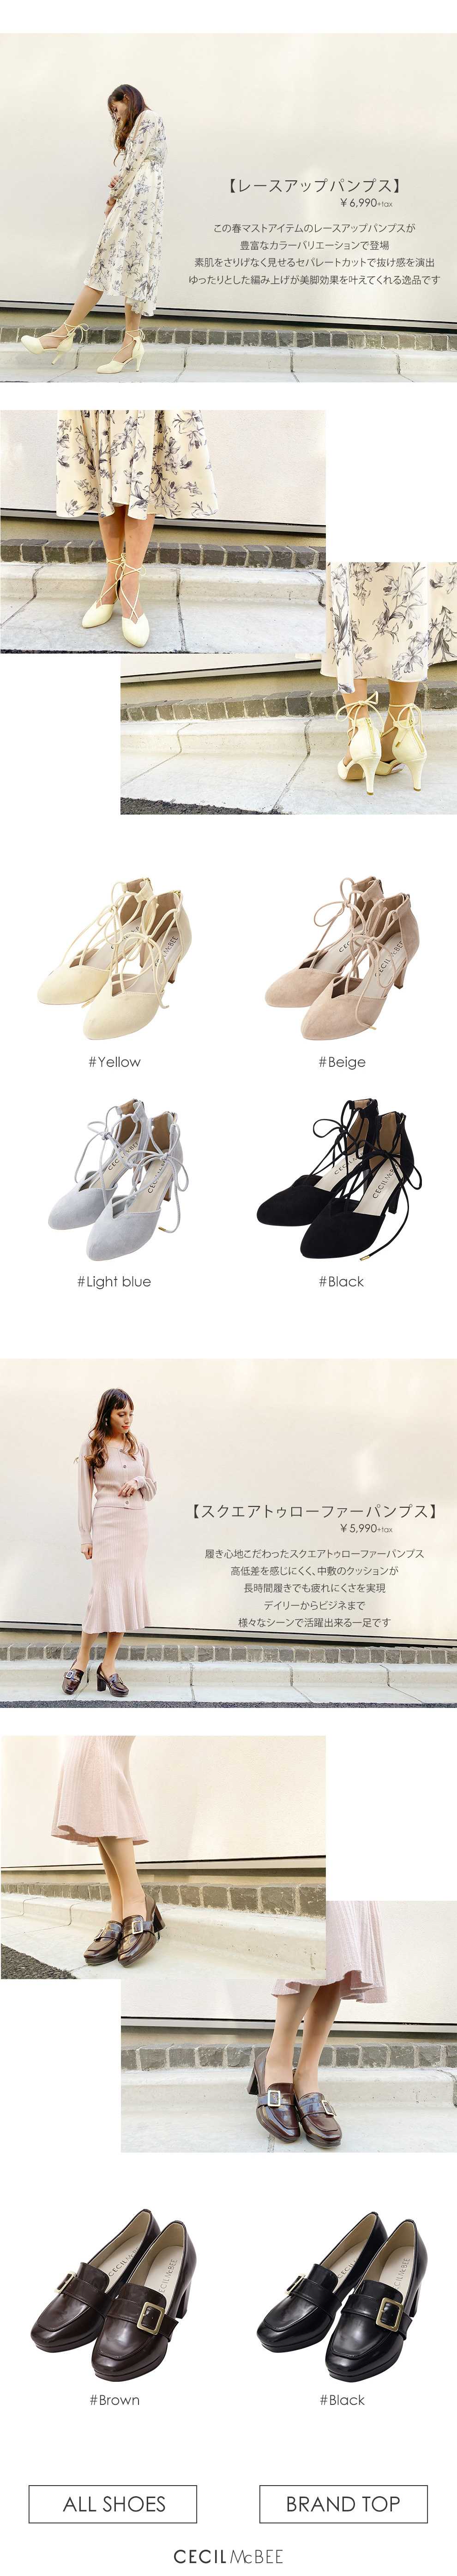 NEW ARRIVAL -2020 Spring Shoes-